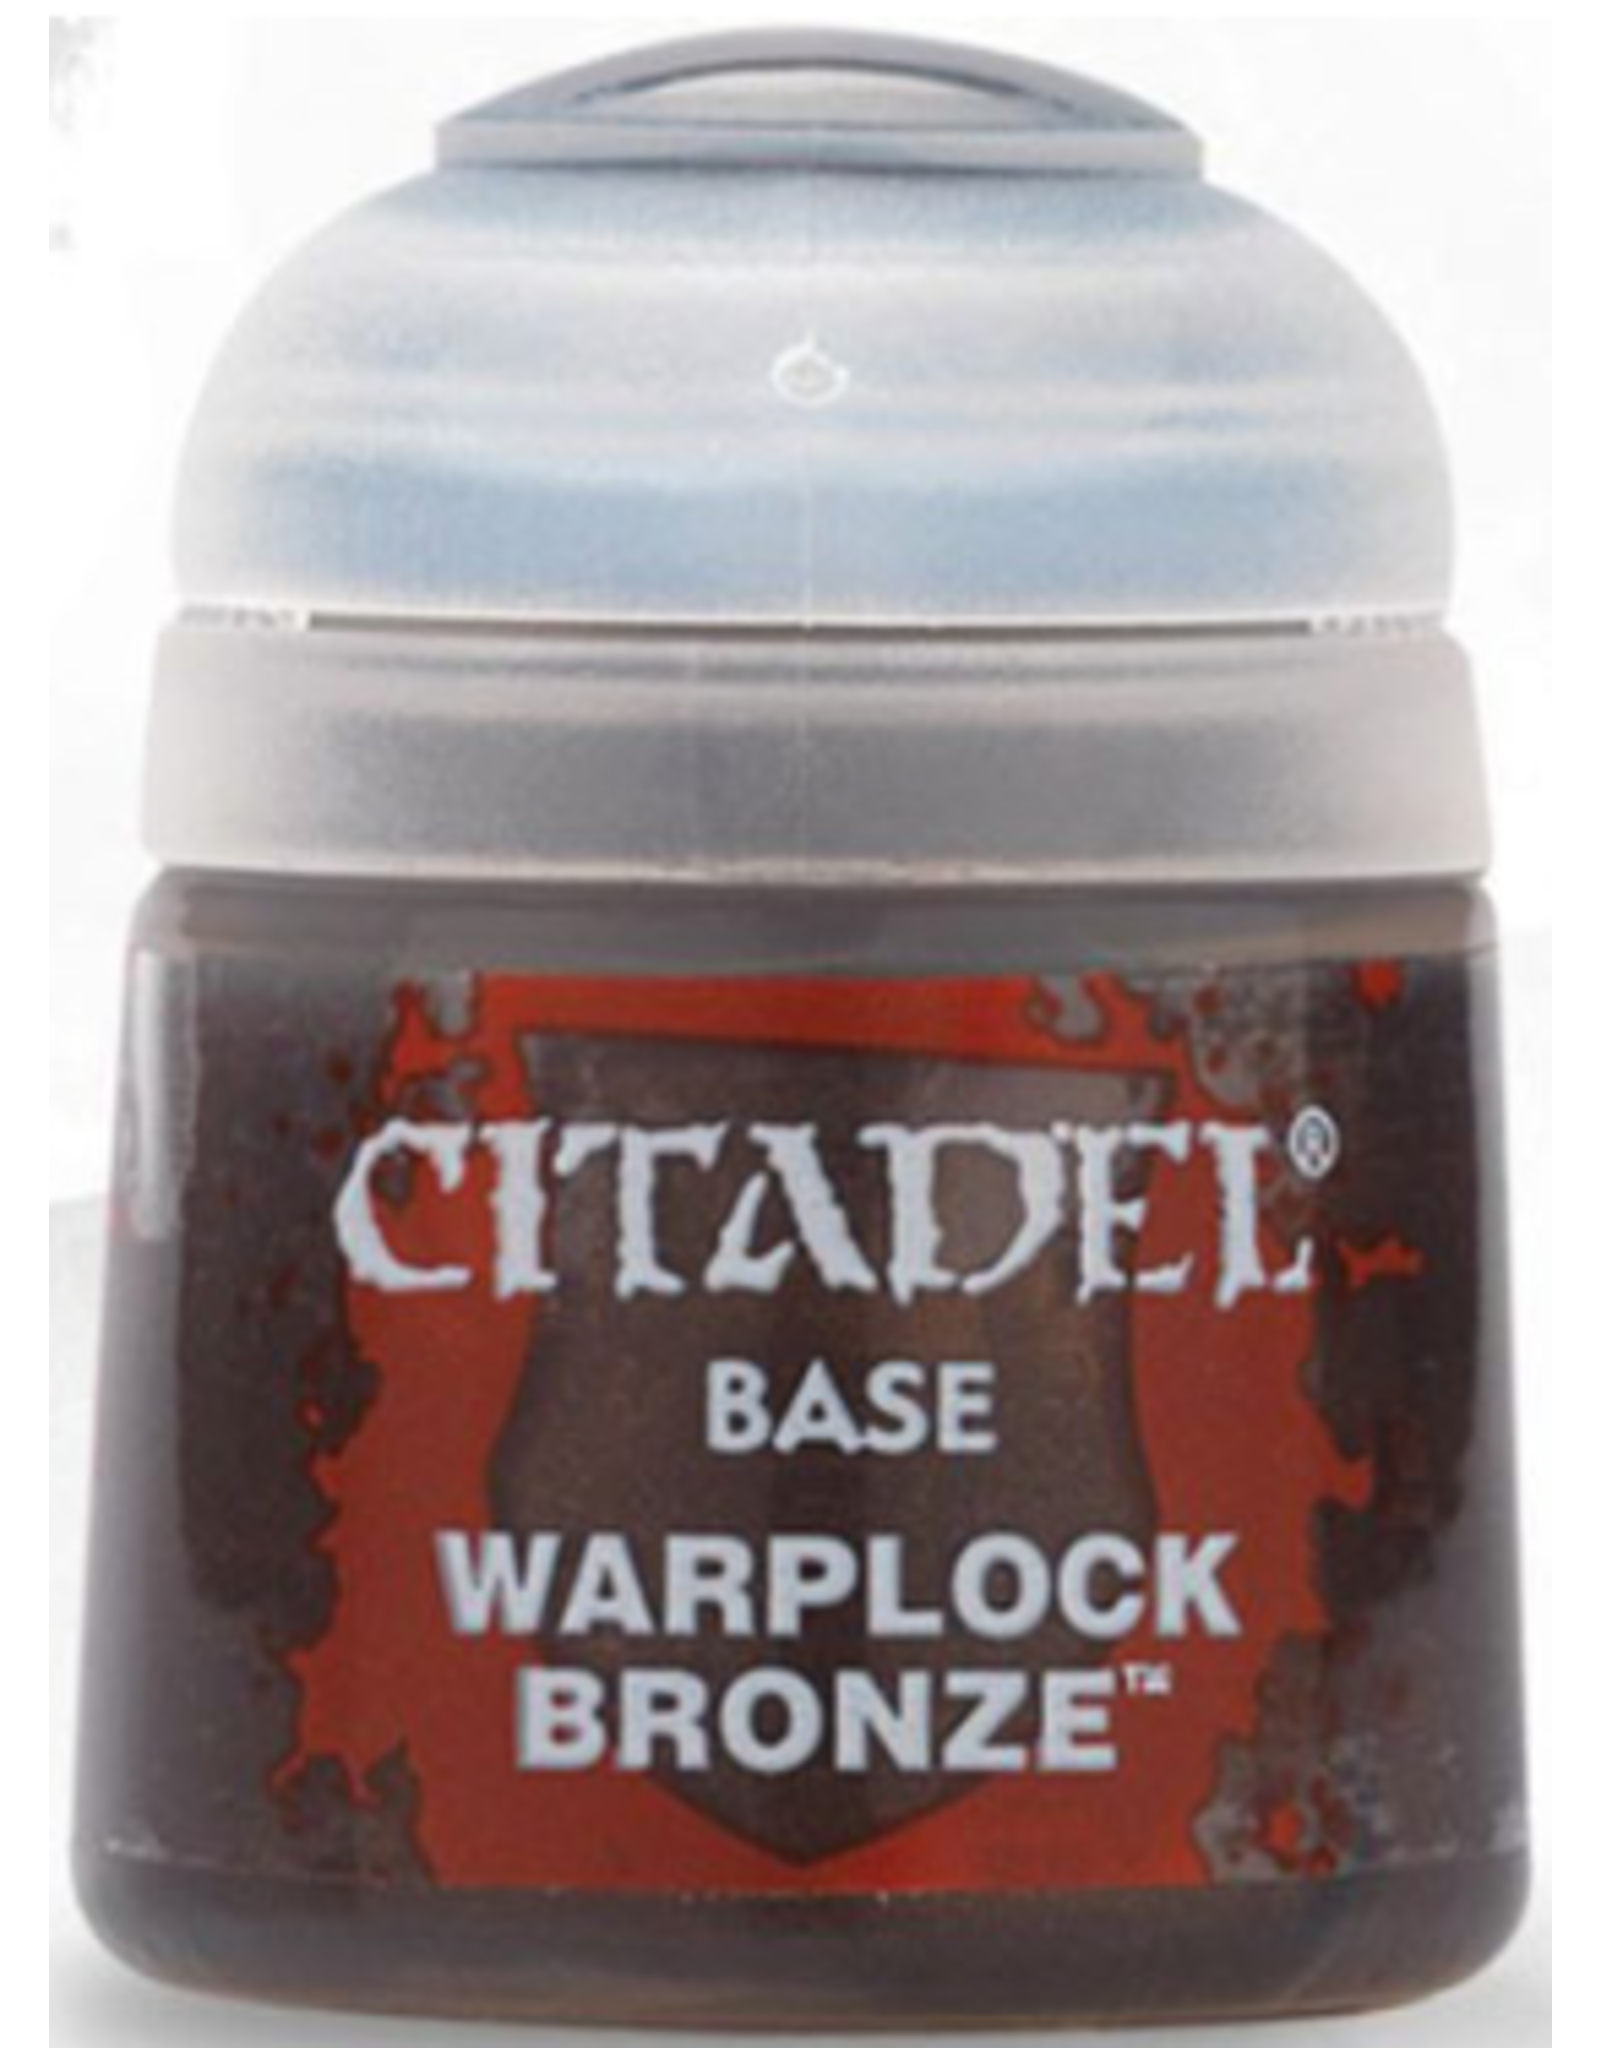 Games Workshop Citadel Base Warplock Bronze